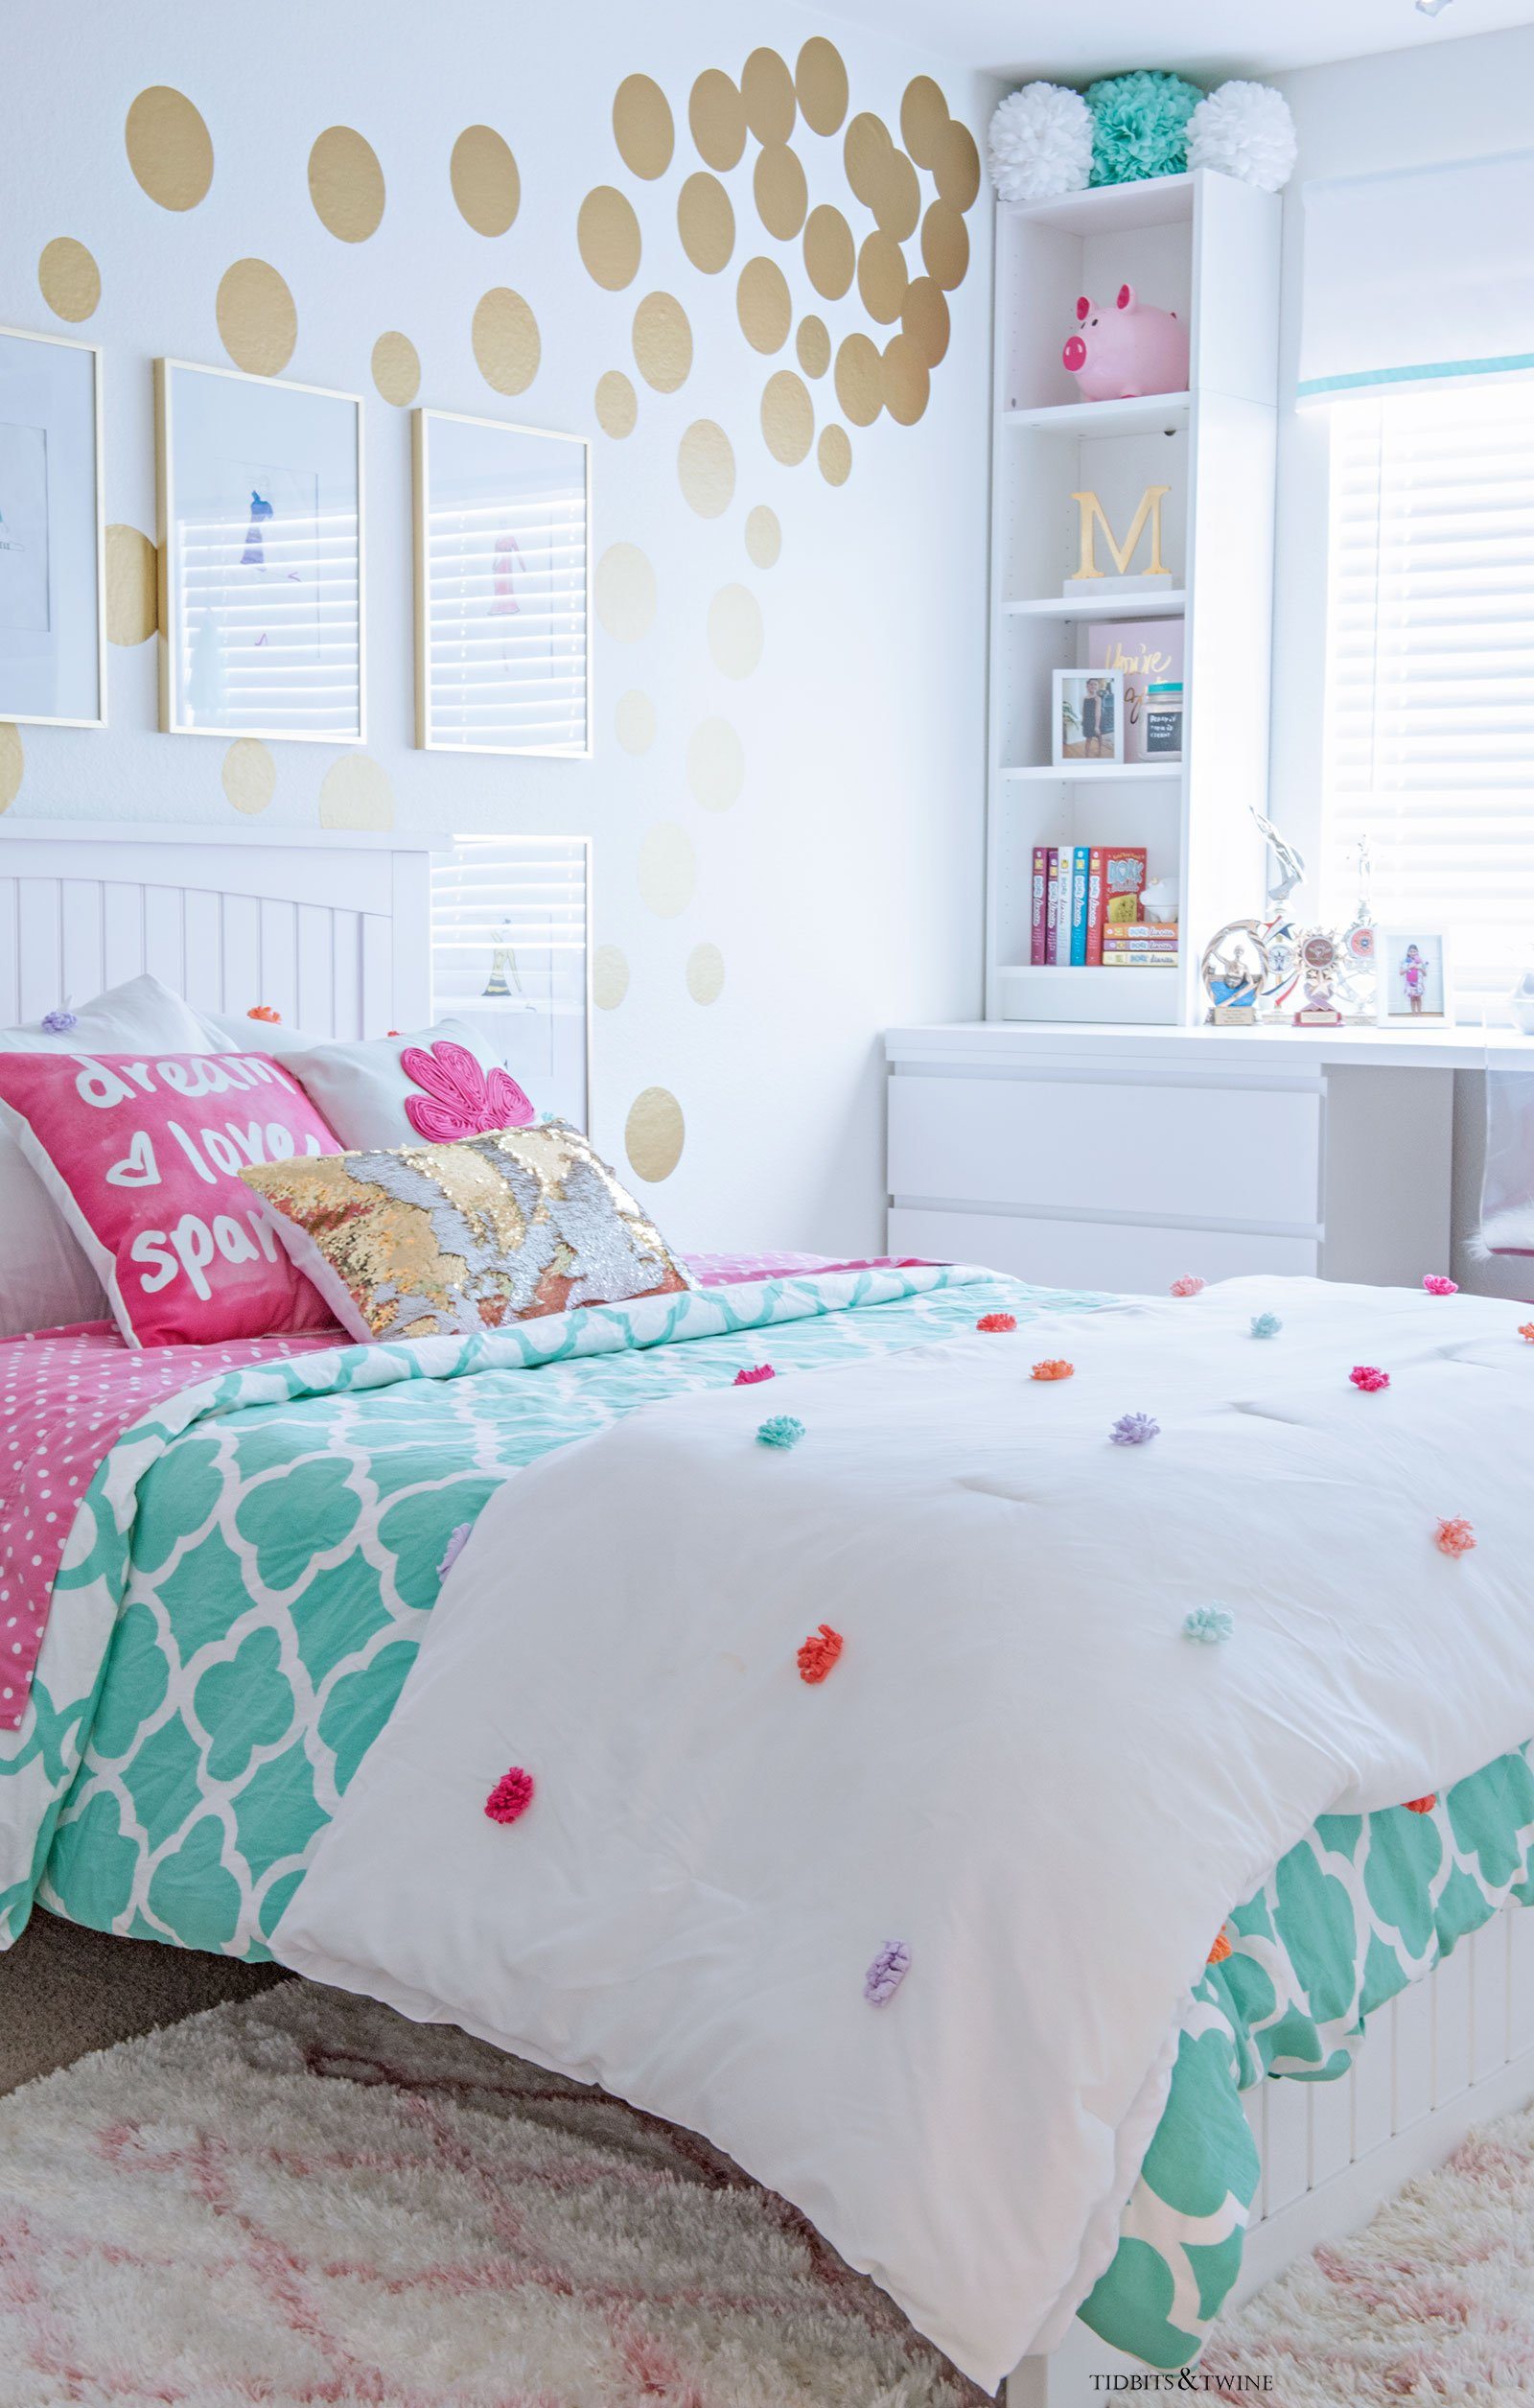 Tween girl bedroom decorating ideas - white and turquoise with pops of gold and pink!